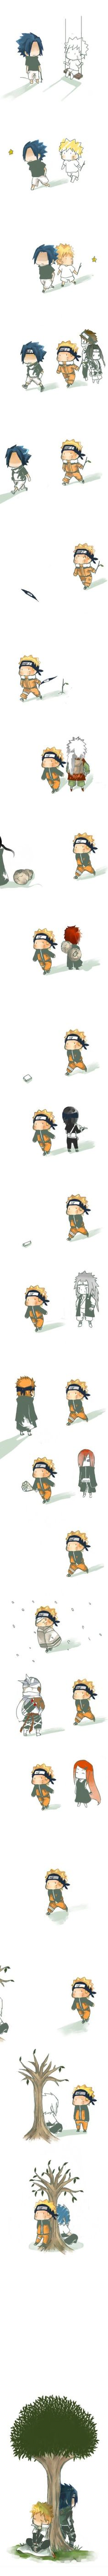 ##Naruto #Sasuke .where are u?I'm still here waiting for u~/(ㄒoㄒ)/~~In the end,  Is you by my side.